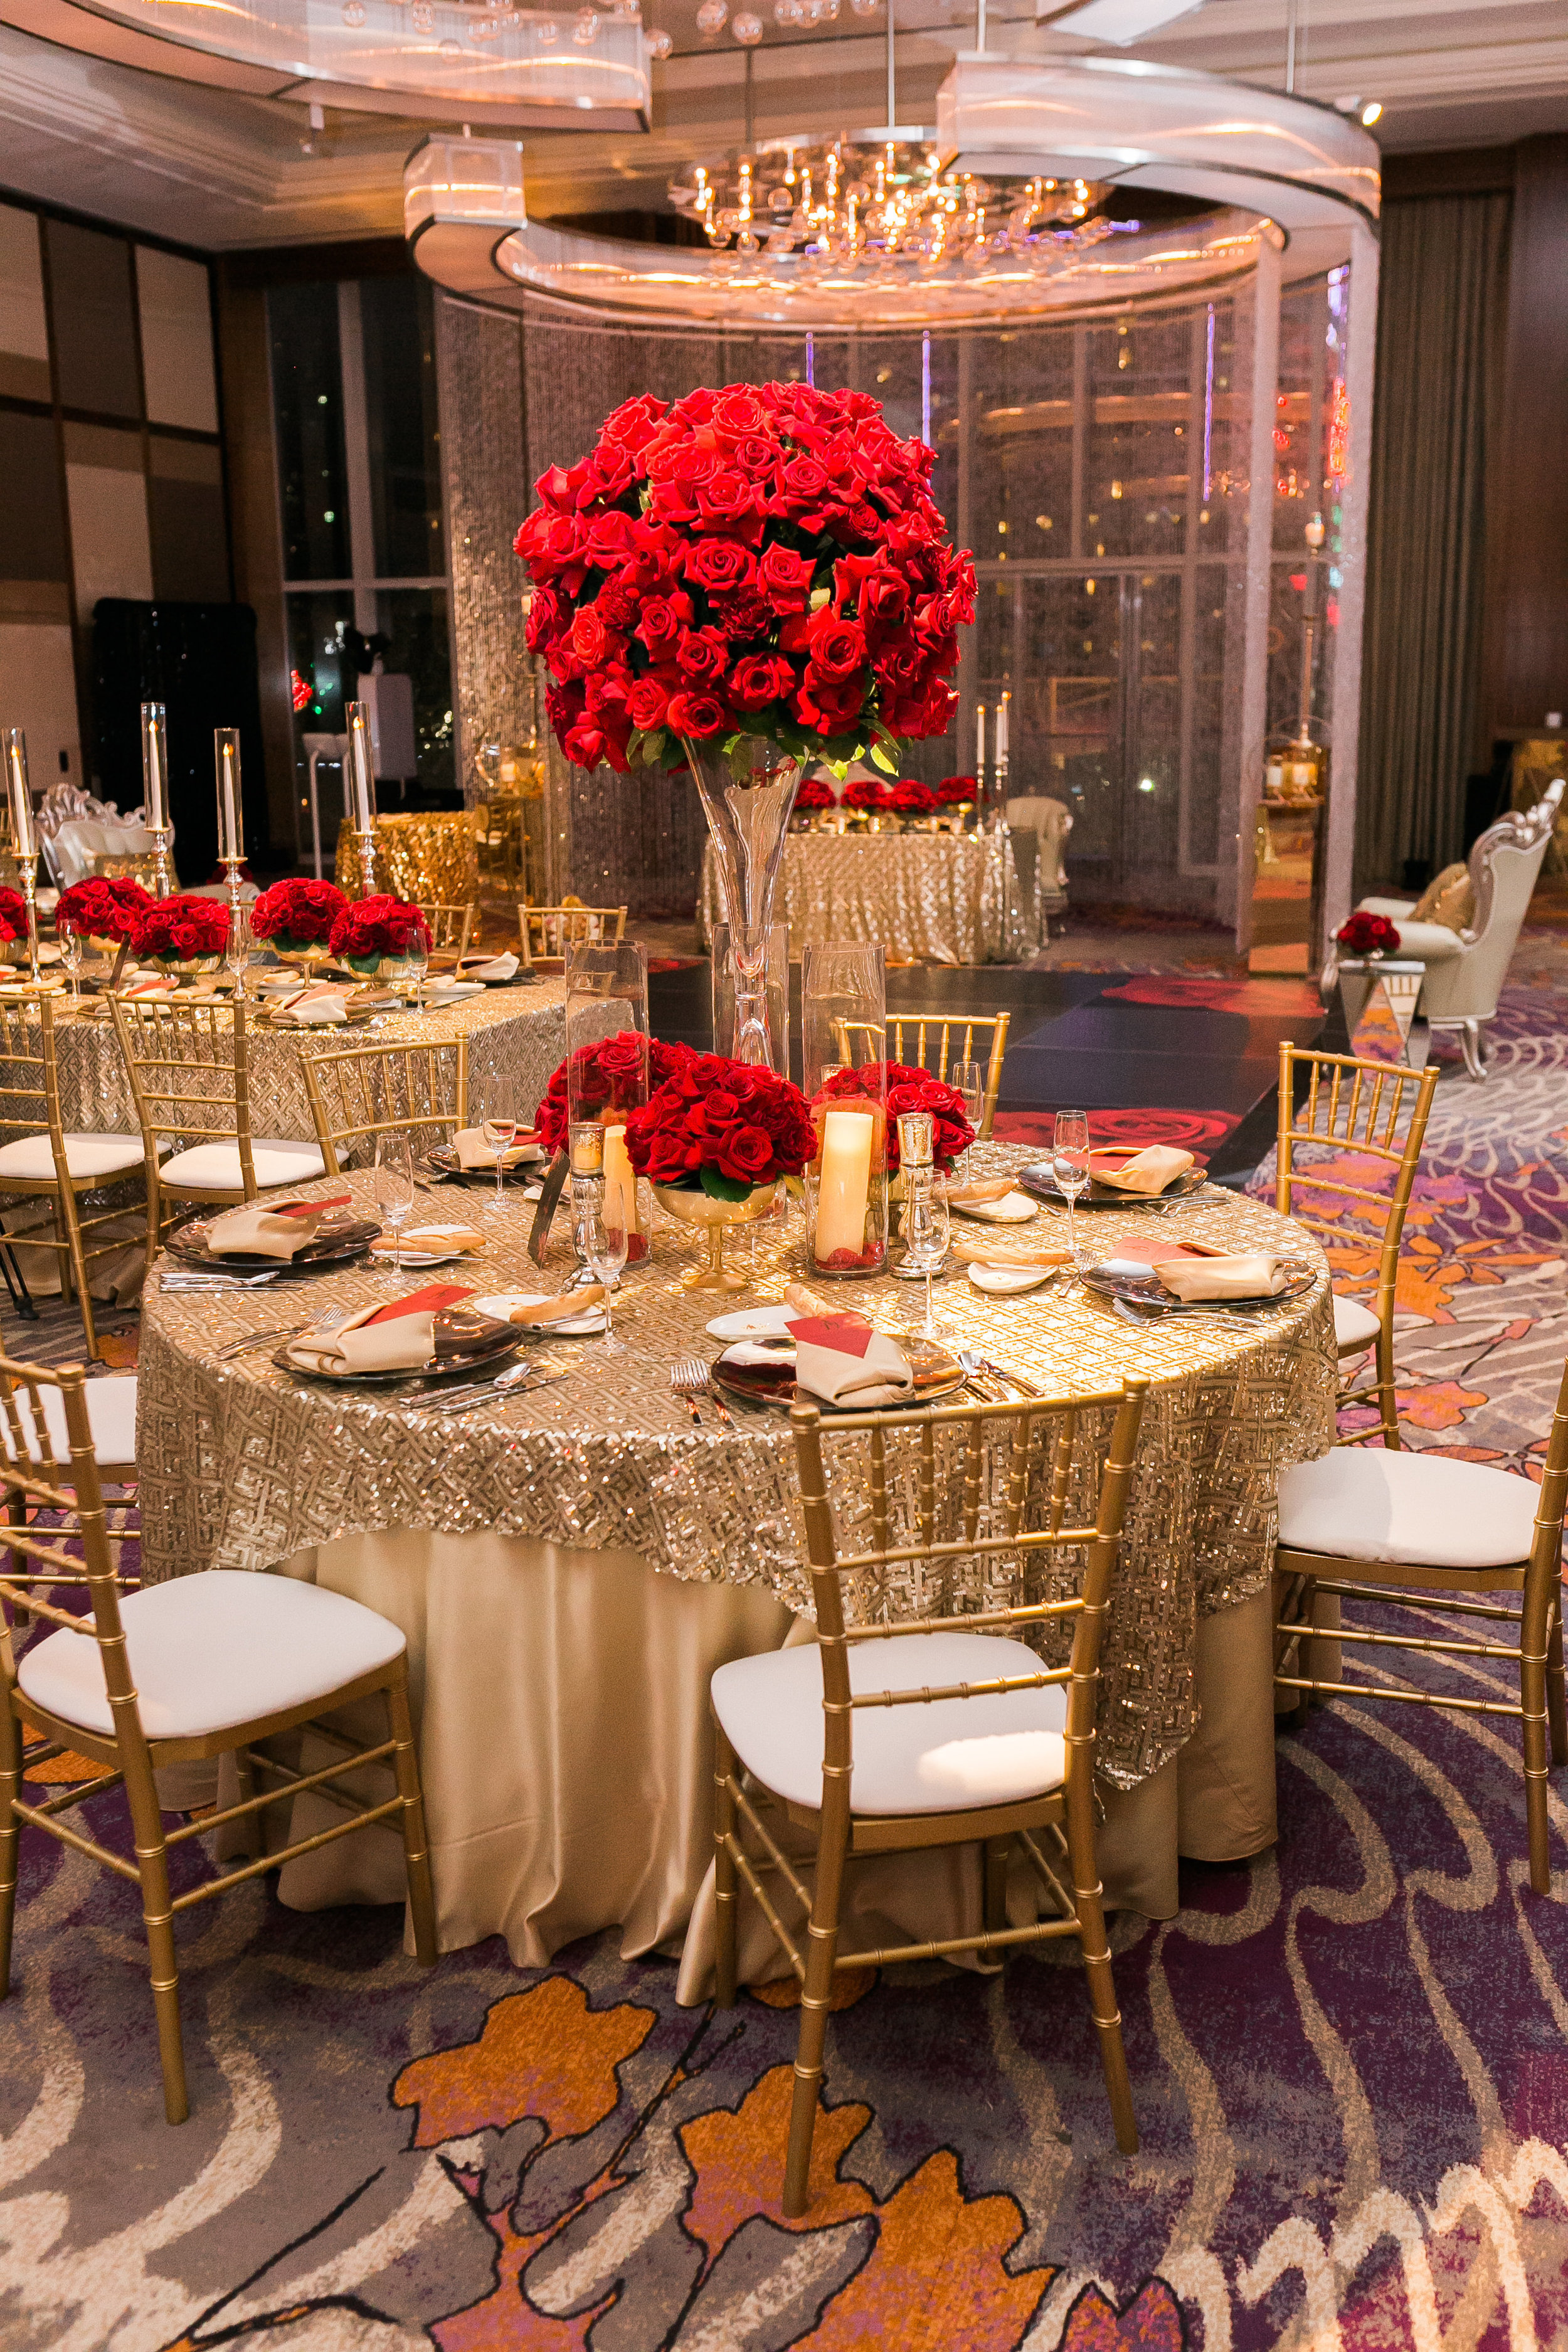 Gold tables topped with tall red rose centerpieces.  Las Vegas Wedding Planner Andrea Eppolito.  www.andreaeppolitoevents.com  Photo by J.Anne Photography.  www.j-annephotography.com  As seen on The  Wedding Editorialist  Wedding Blog.